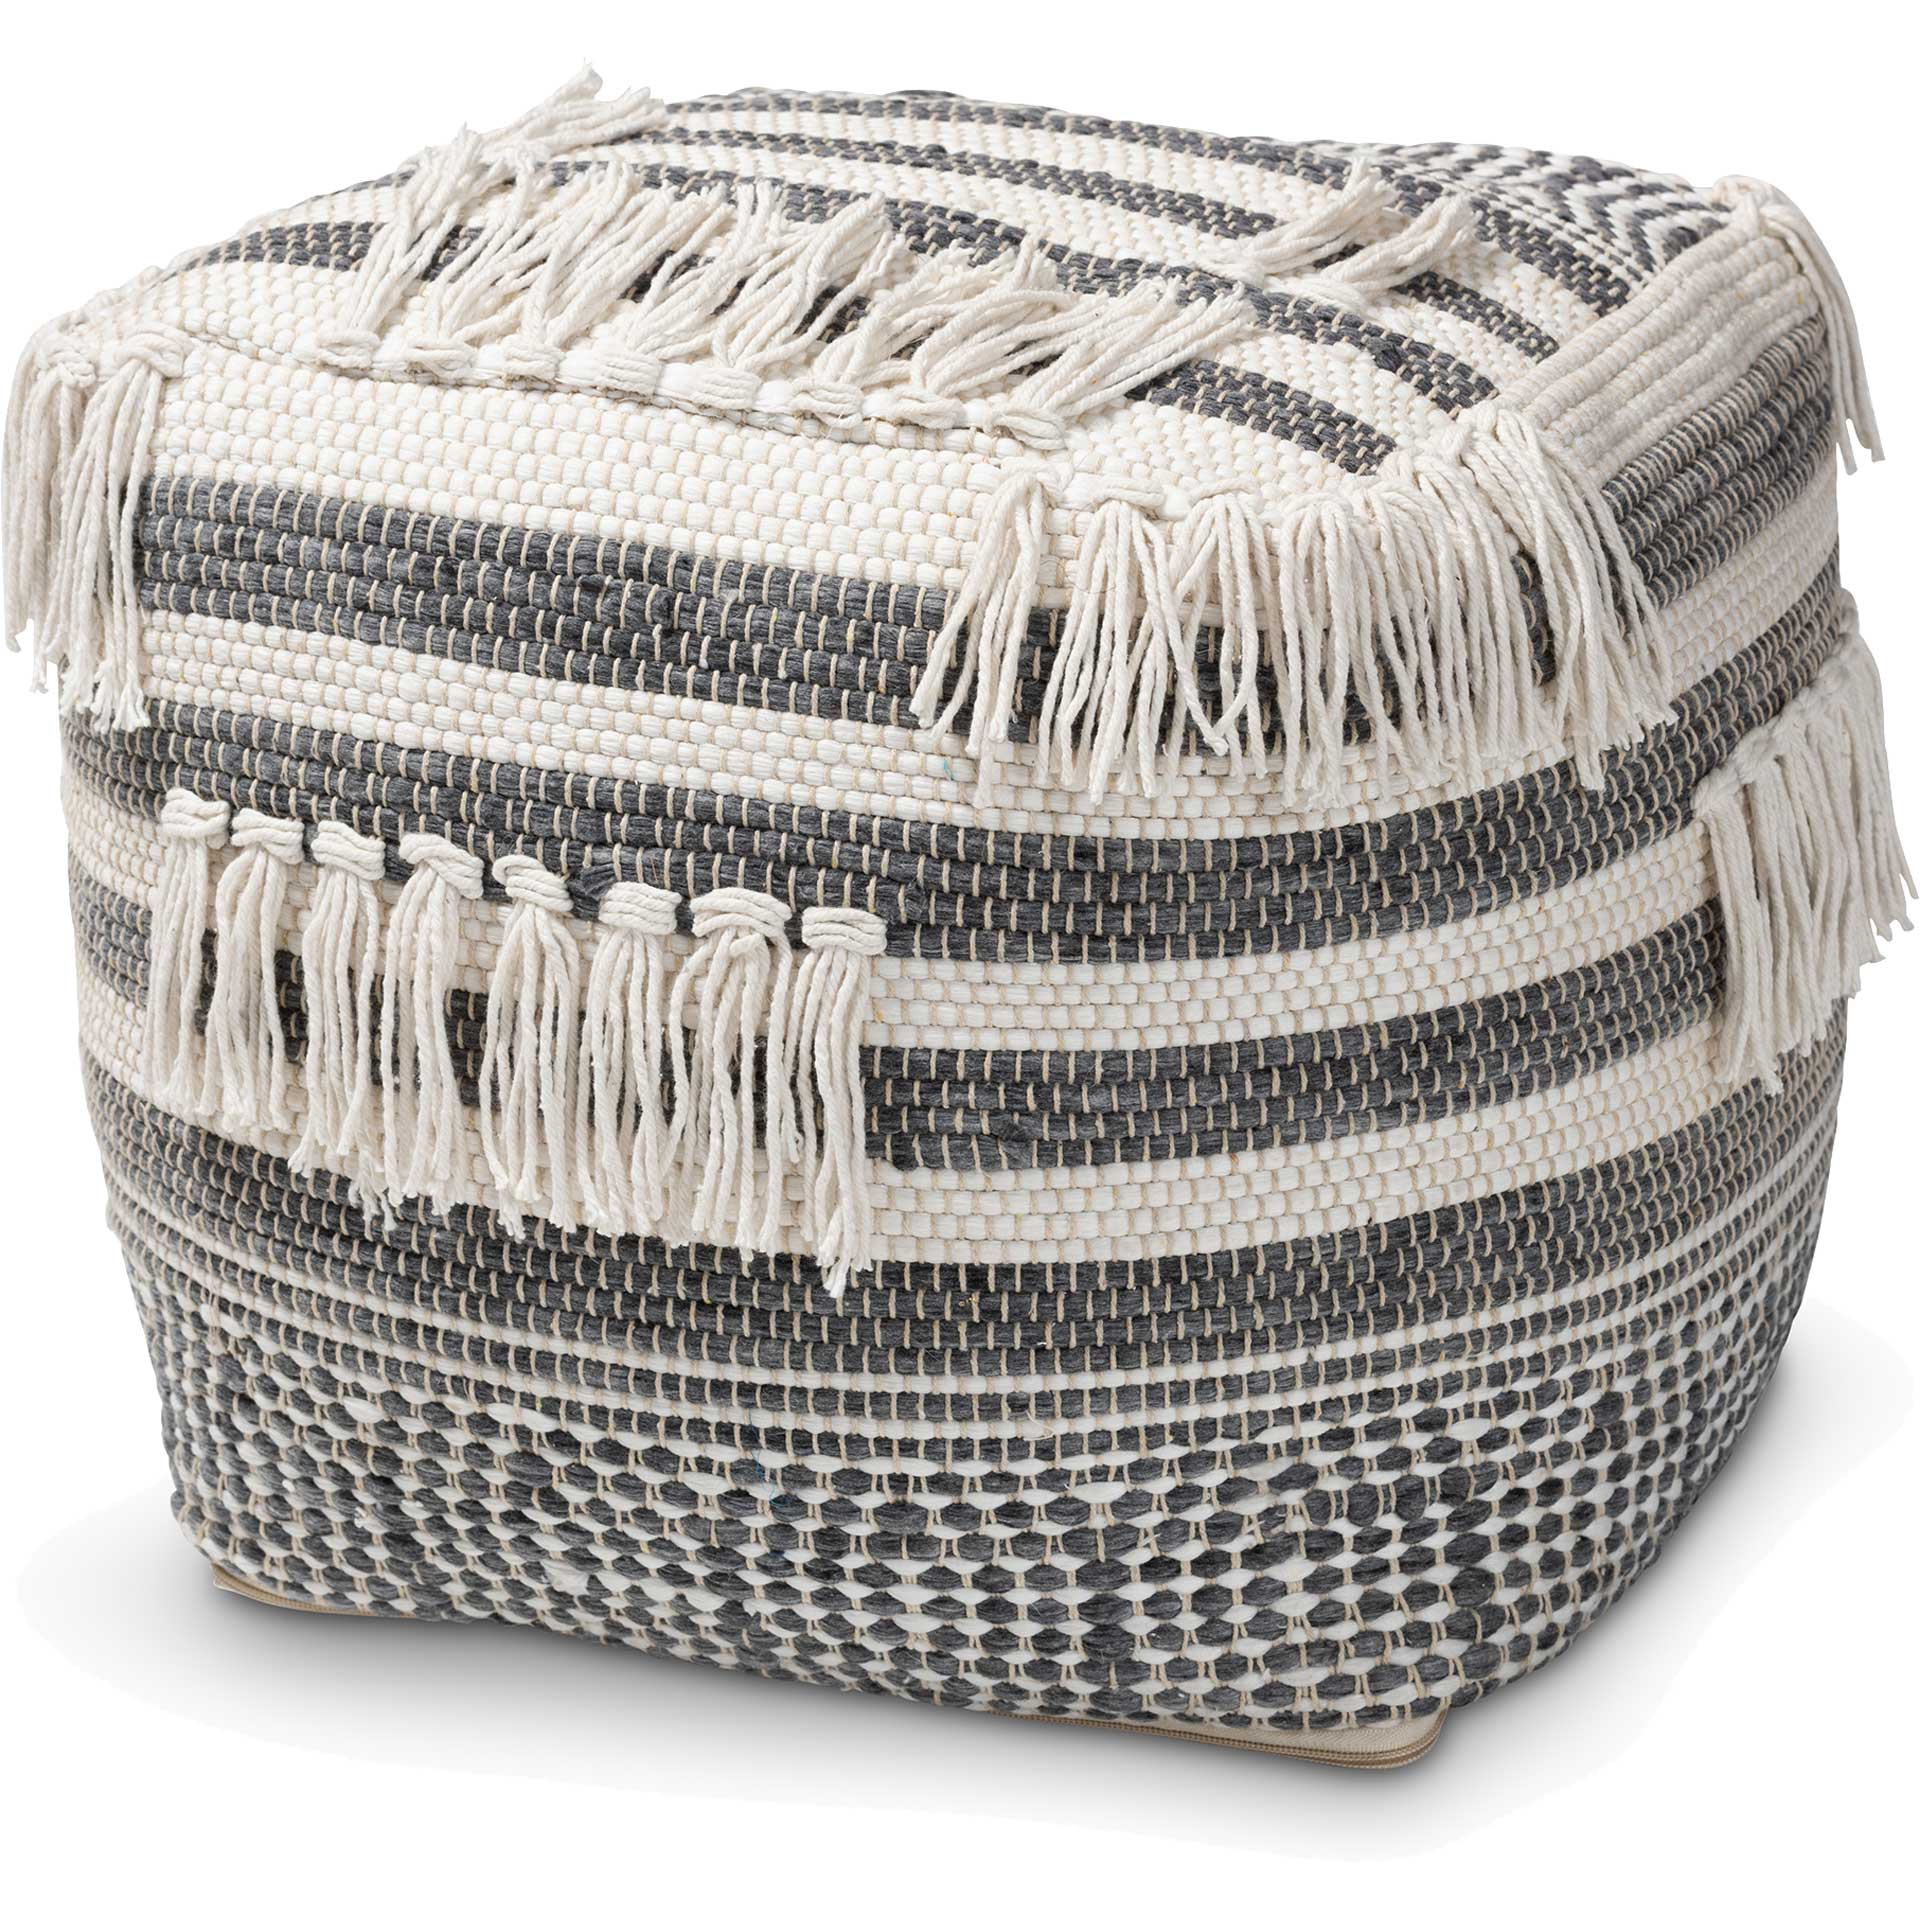 Kiam Handwoven Cotton Pouf Gray/Ivory